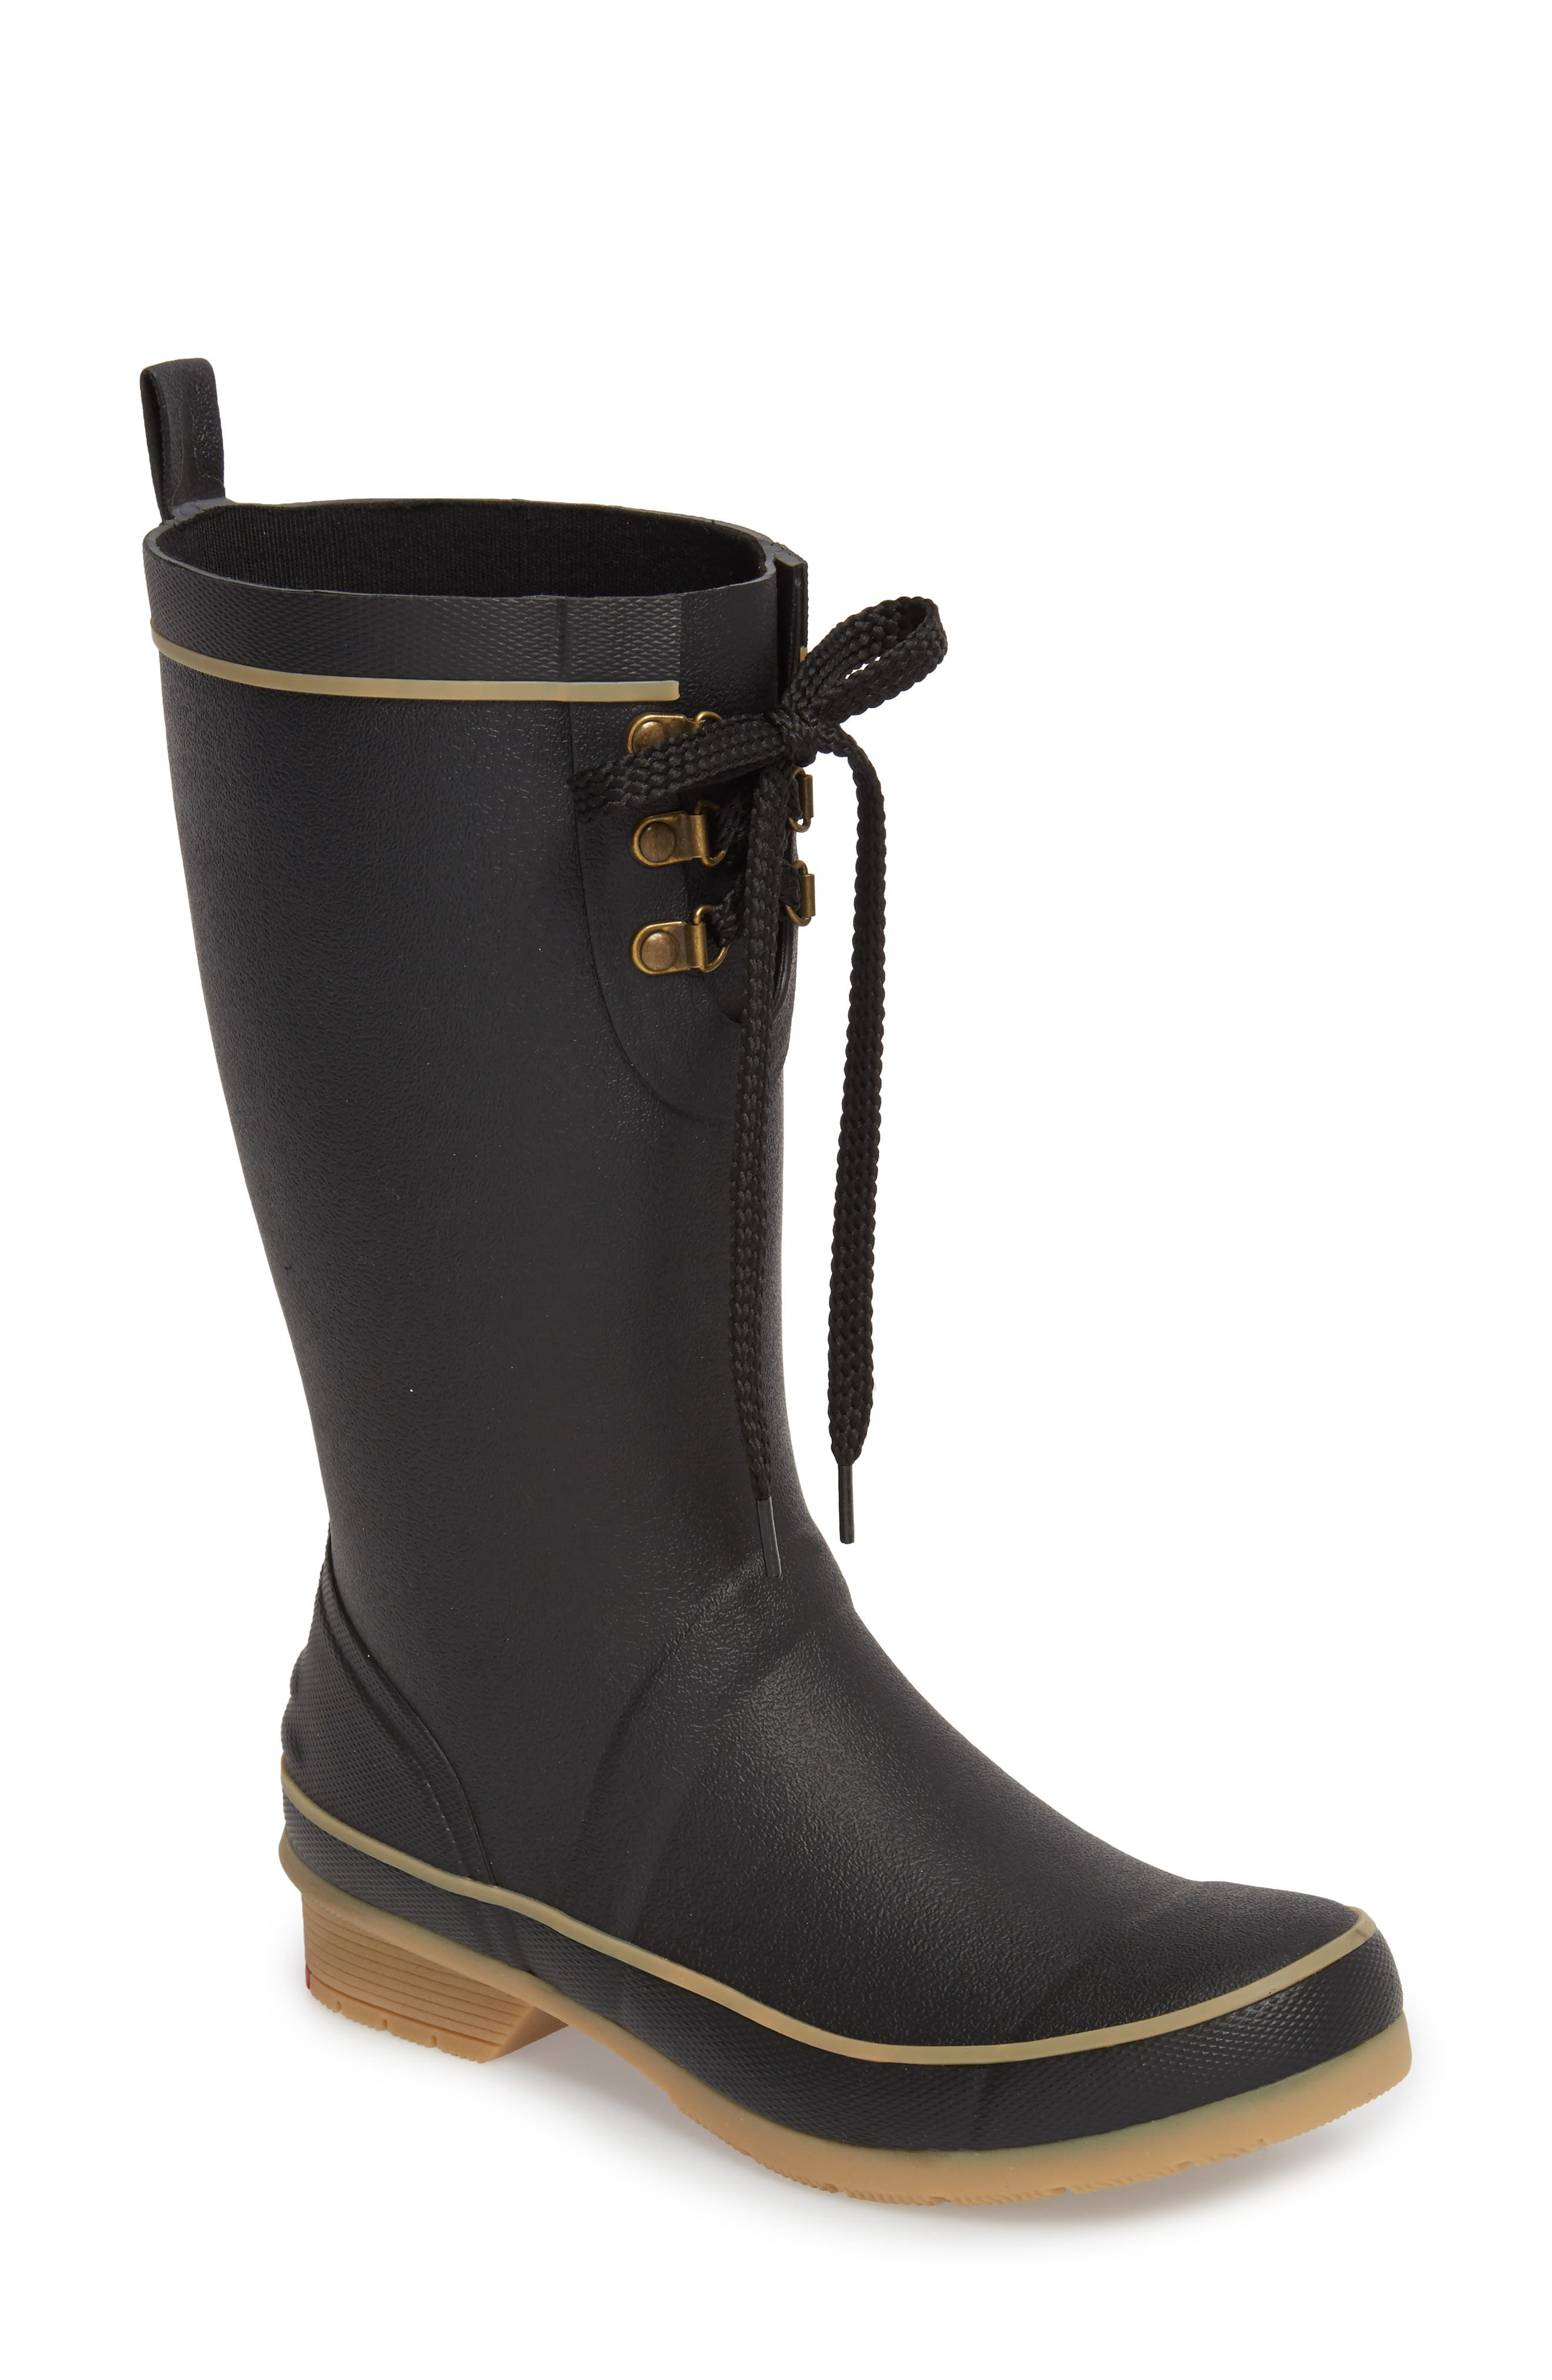 Whidbey Rain Boots,                         Main,                         color, BLACK